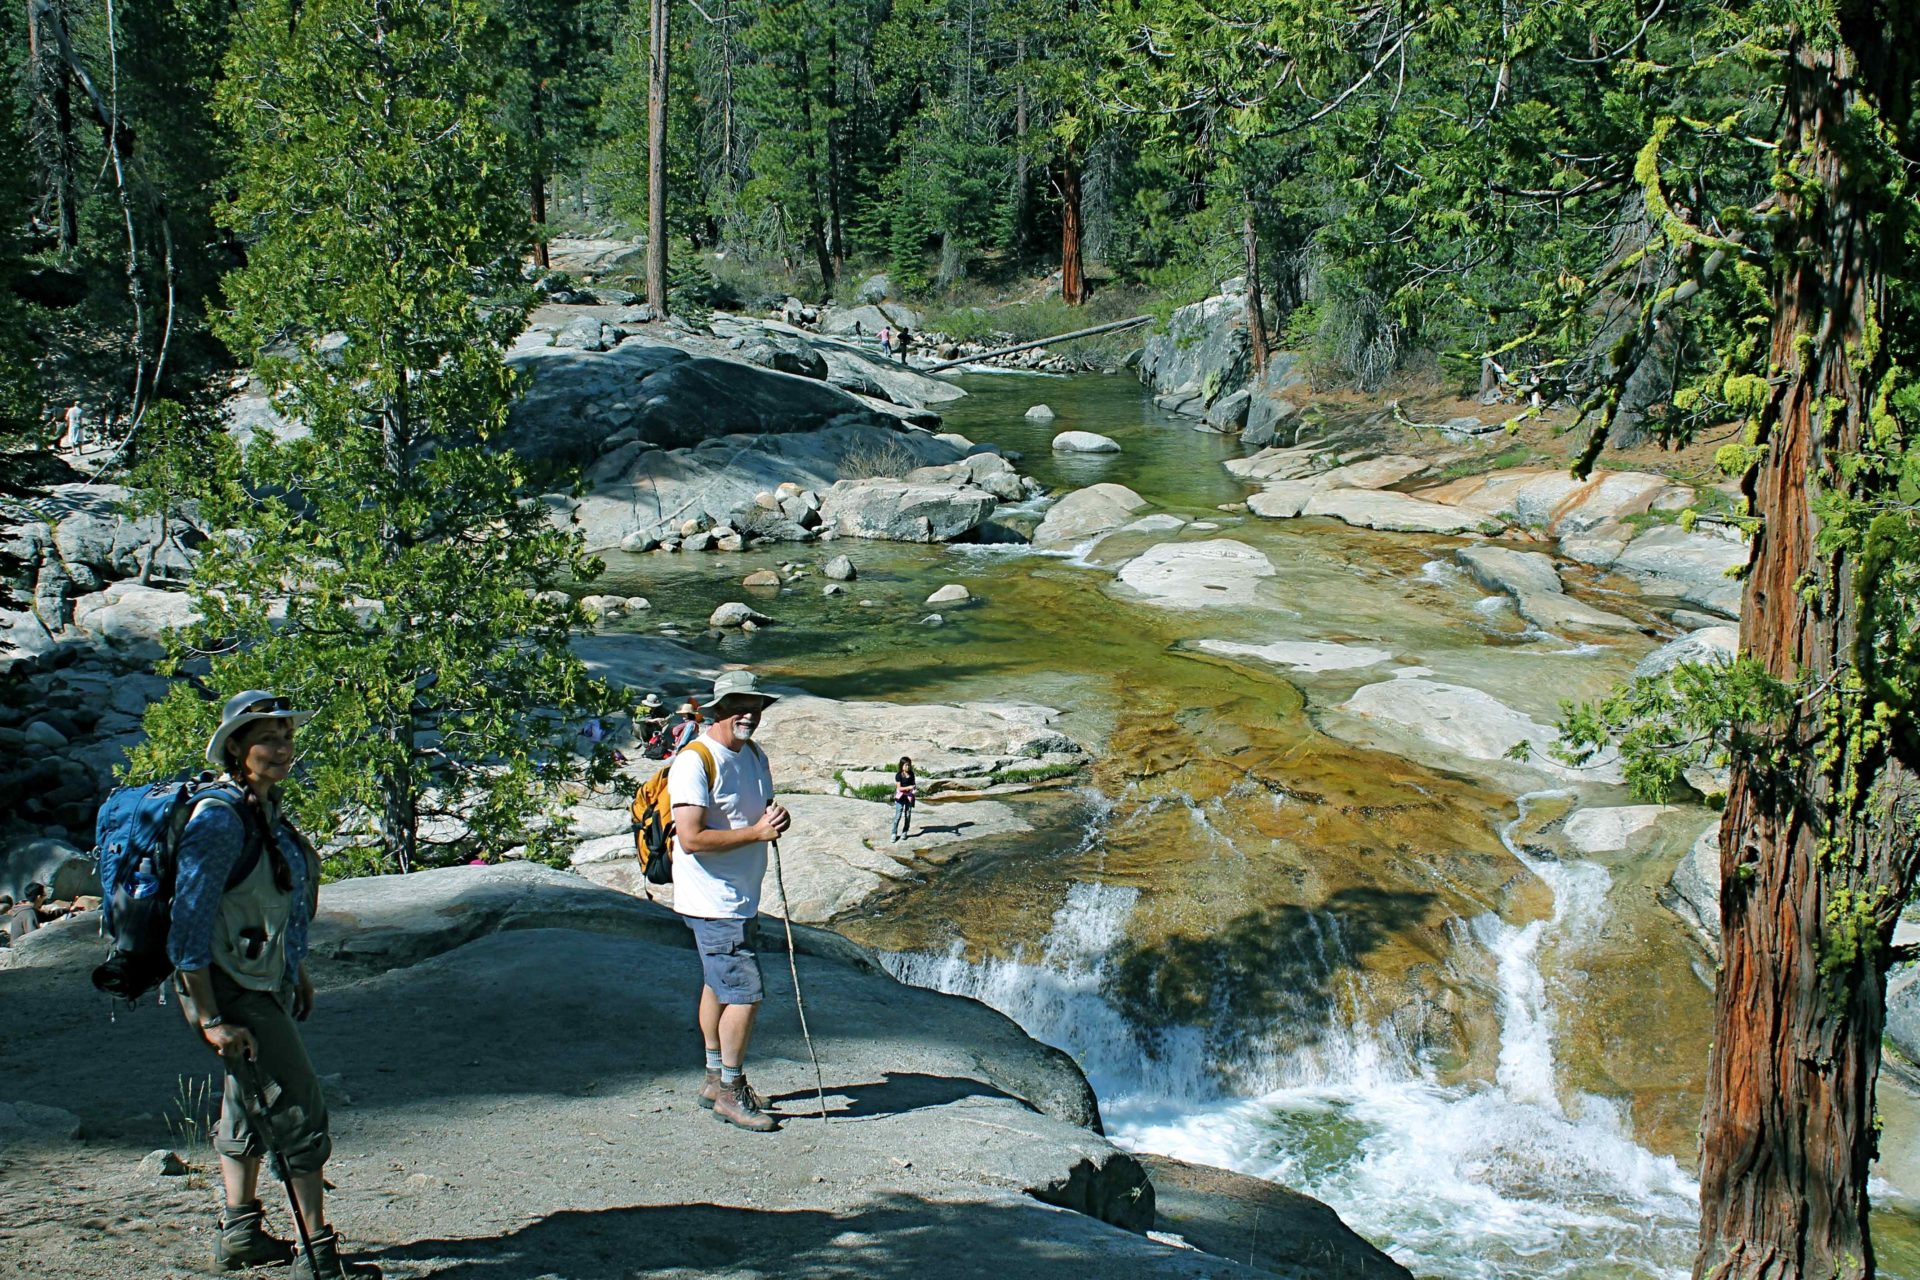 free camping trips exploring the wildest parts of the sierra nevada